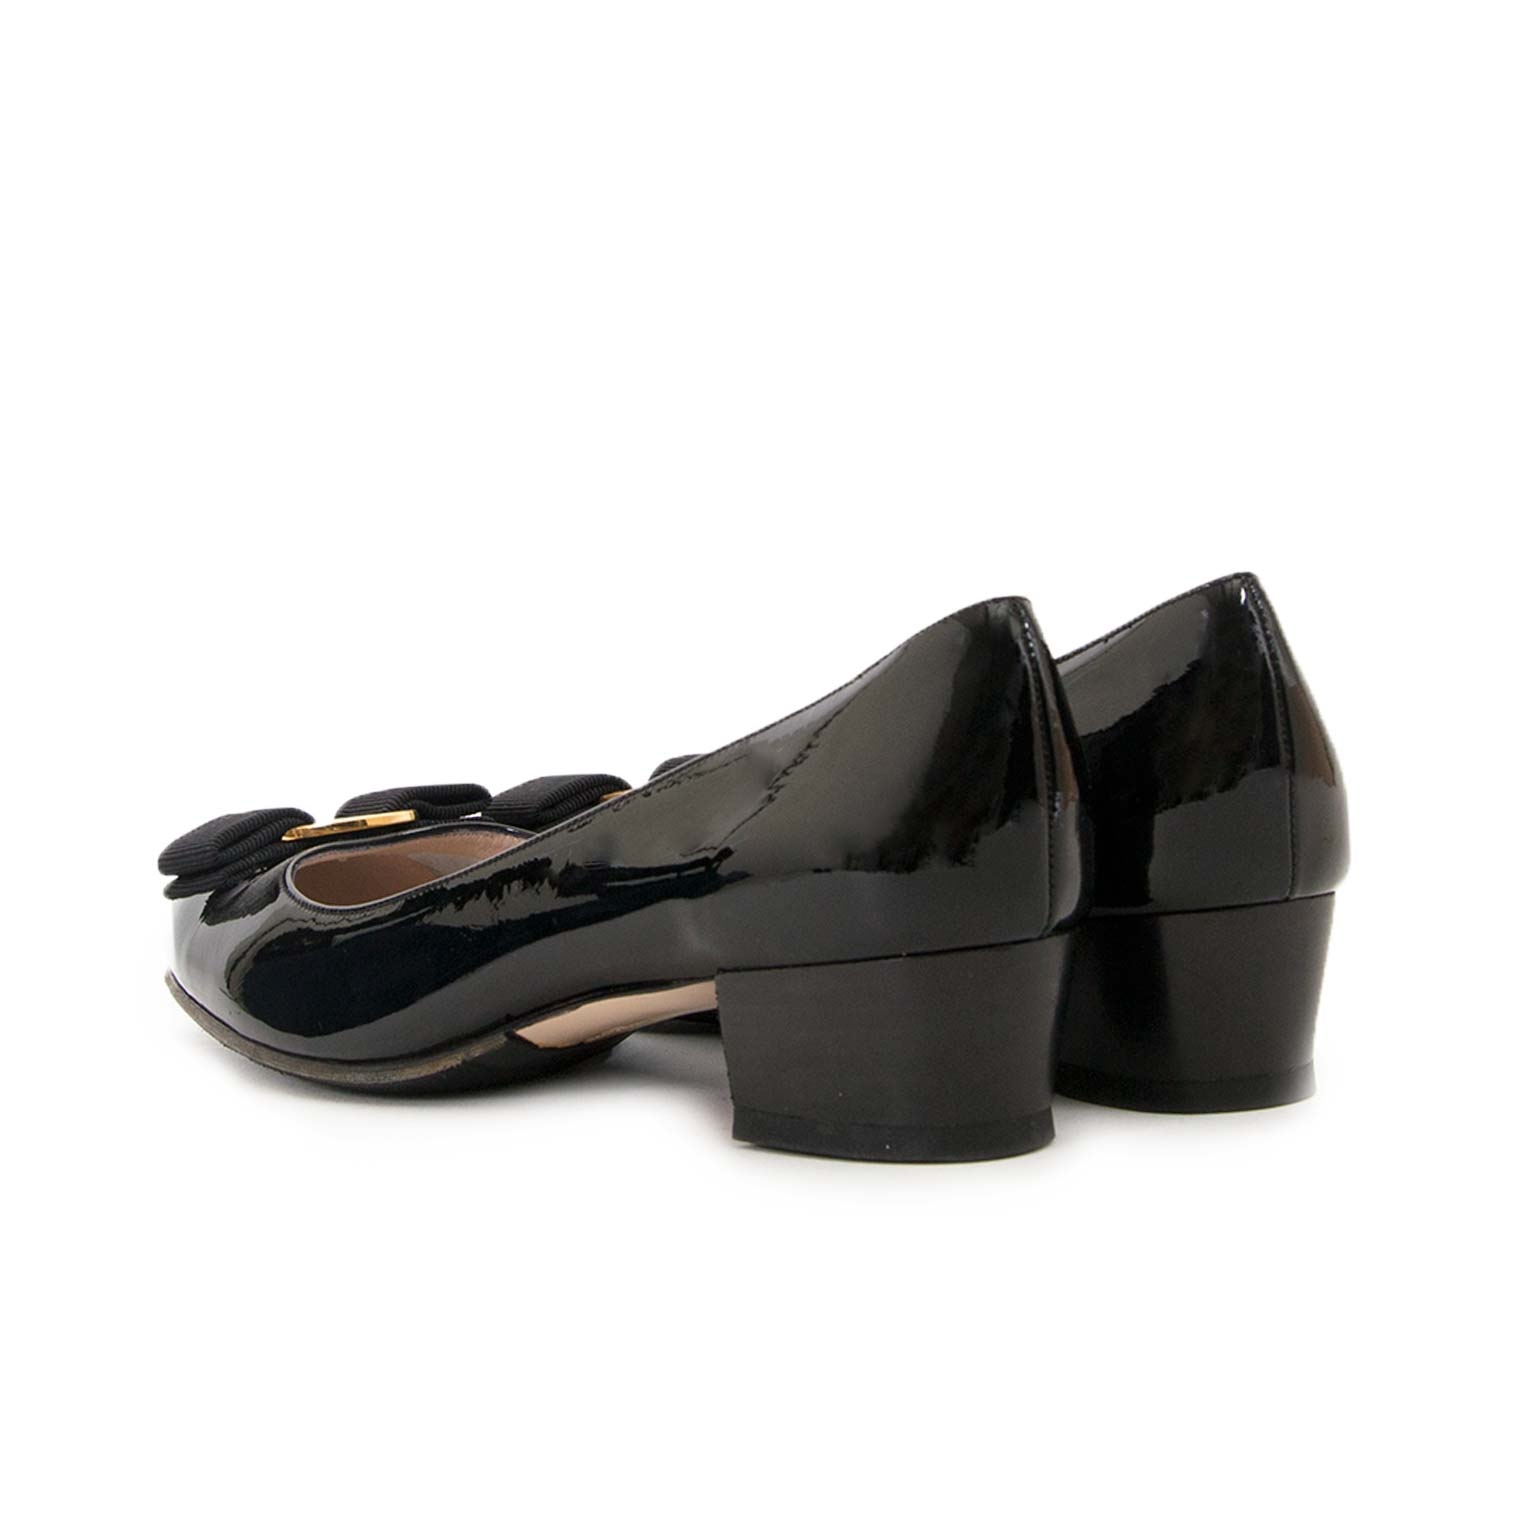 salvatore ferragamo black patent heels now for sale at labellov vintage fashion webshop belgium